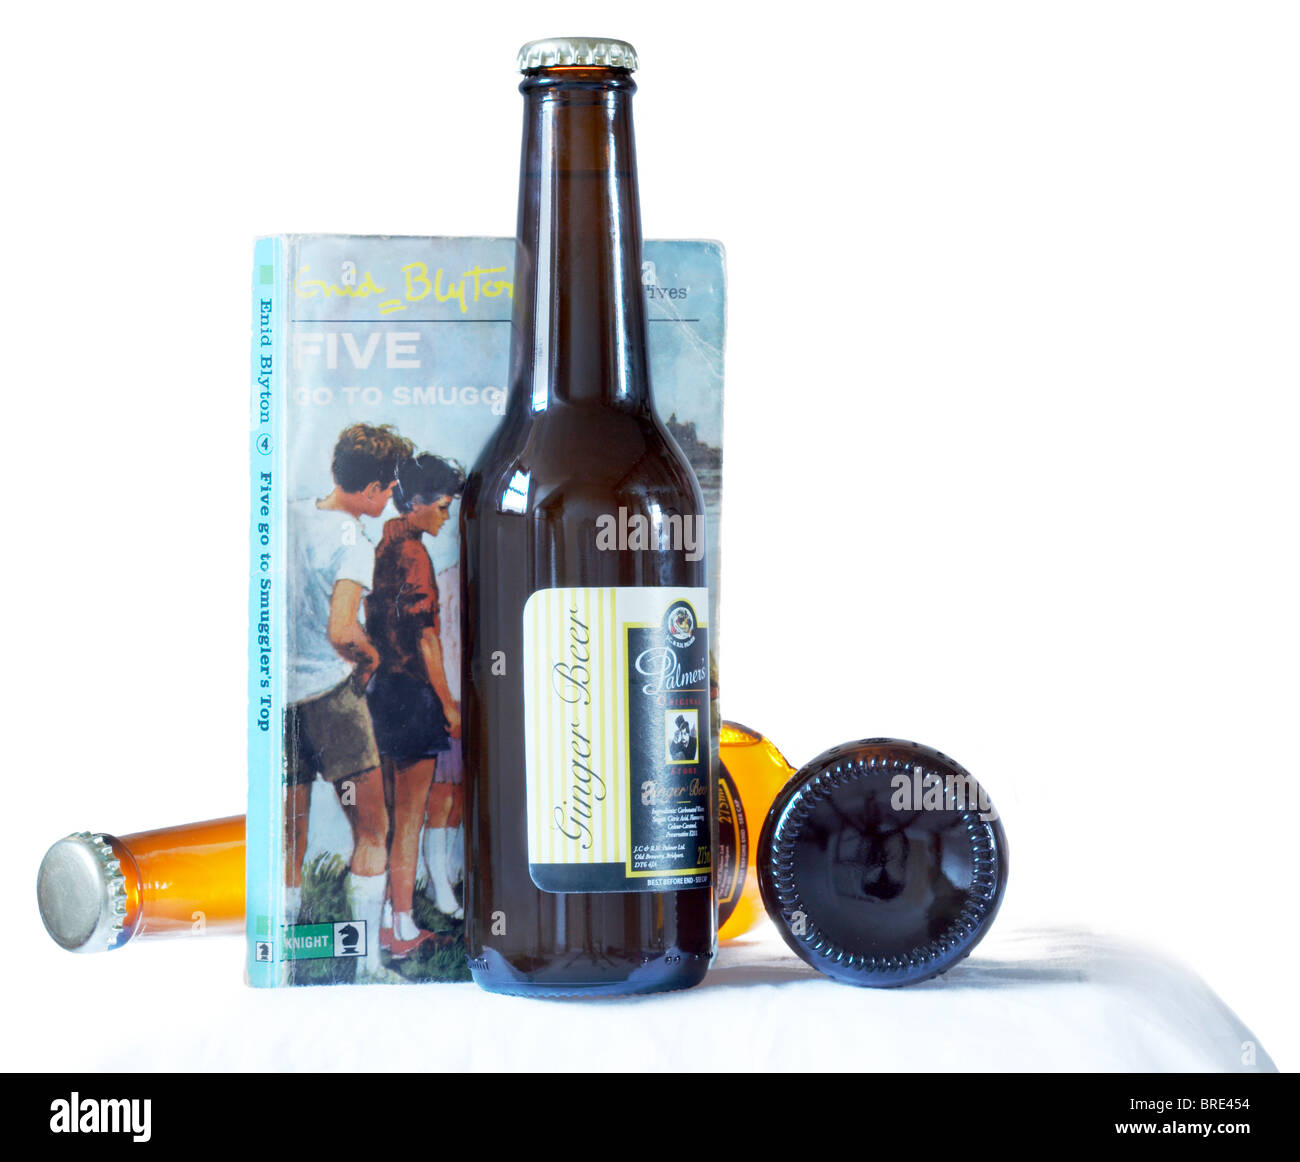 Bottles of ginger beer and a Famous Five book written by Enid Blyton - Stock Image